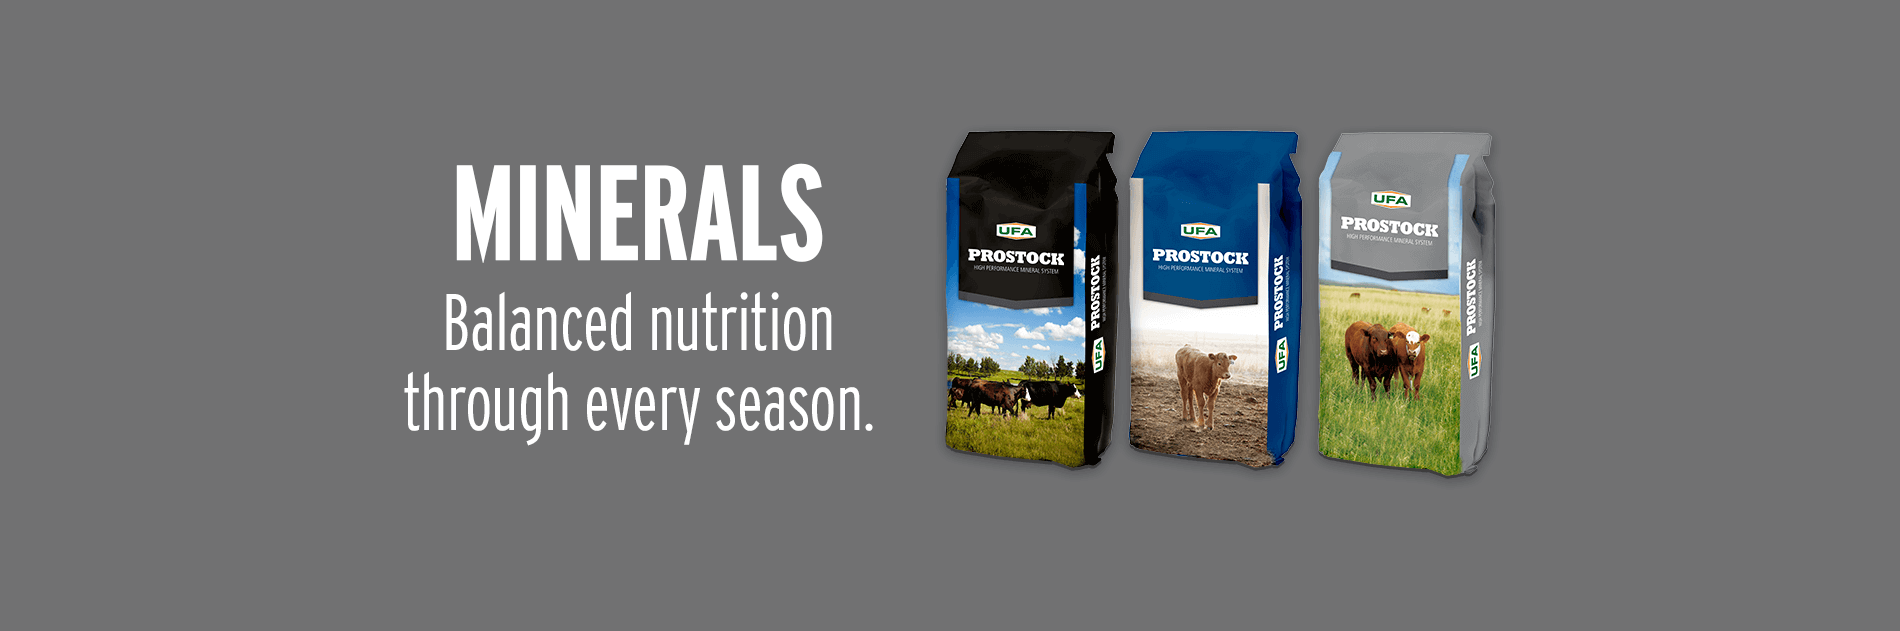 Minerals - Balanced Nutrition for Every Season